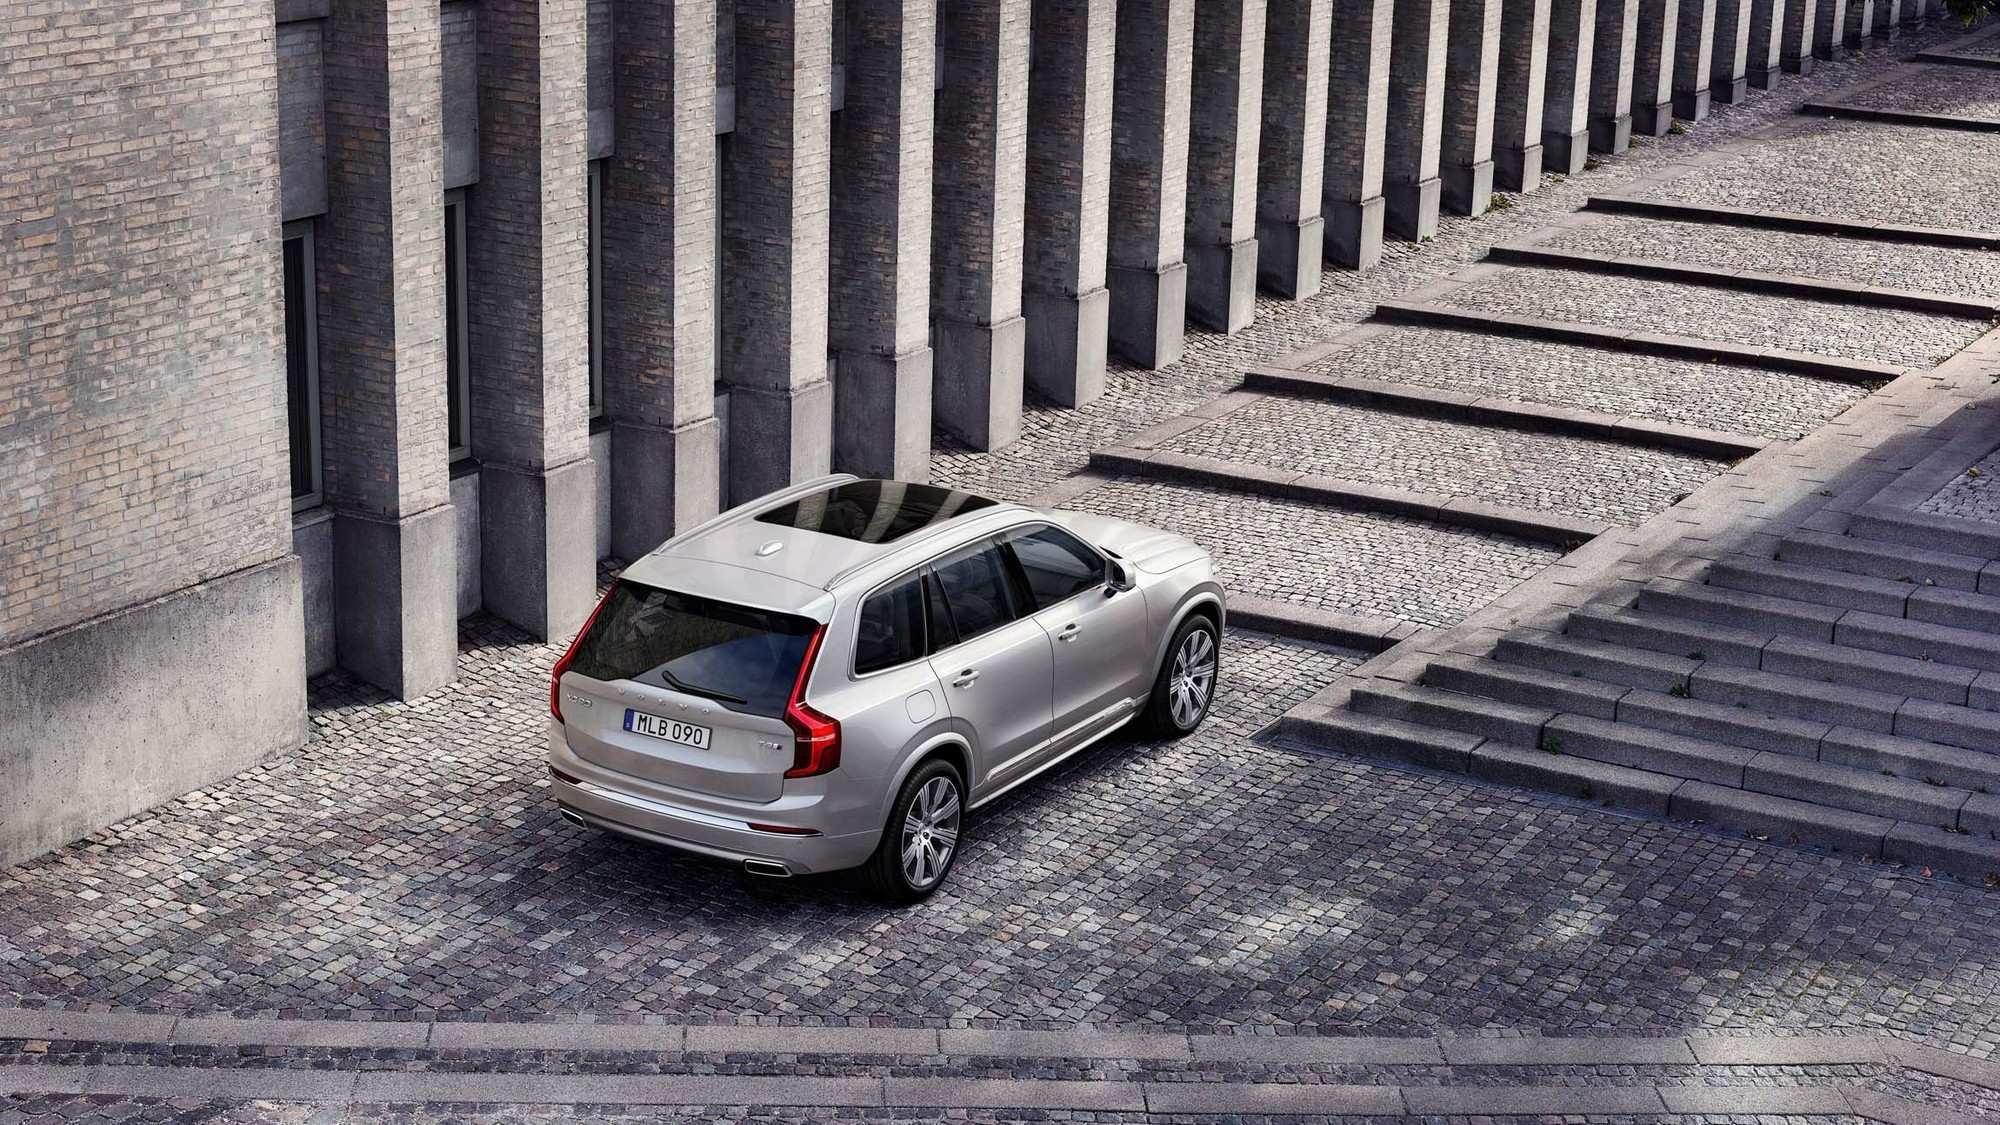 46 Concept of 2020 Volvo XC90 Price and Review with 2020 Volvo XC90